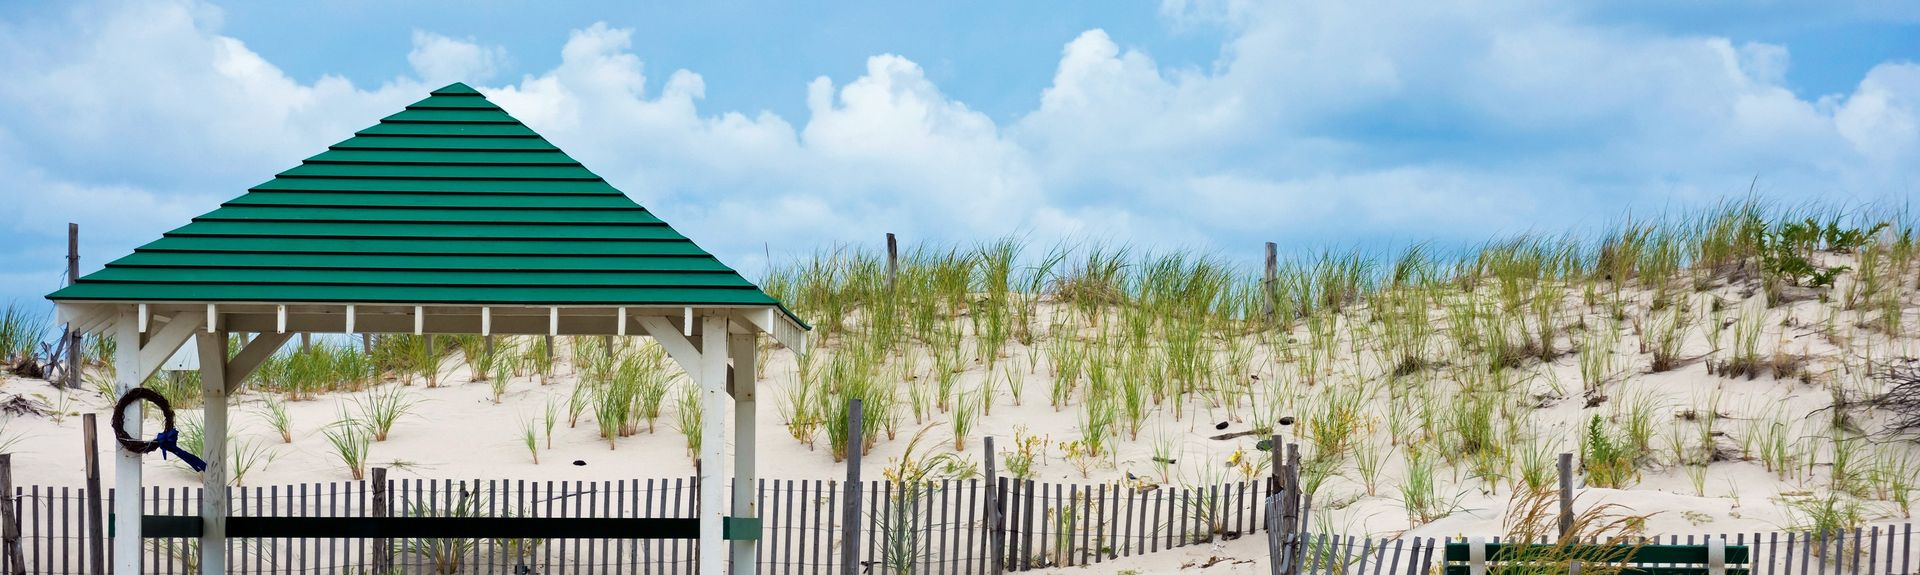 Seaside Park, New Jersey, United States